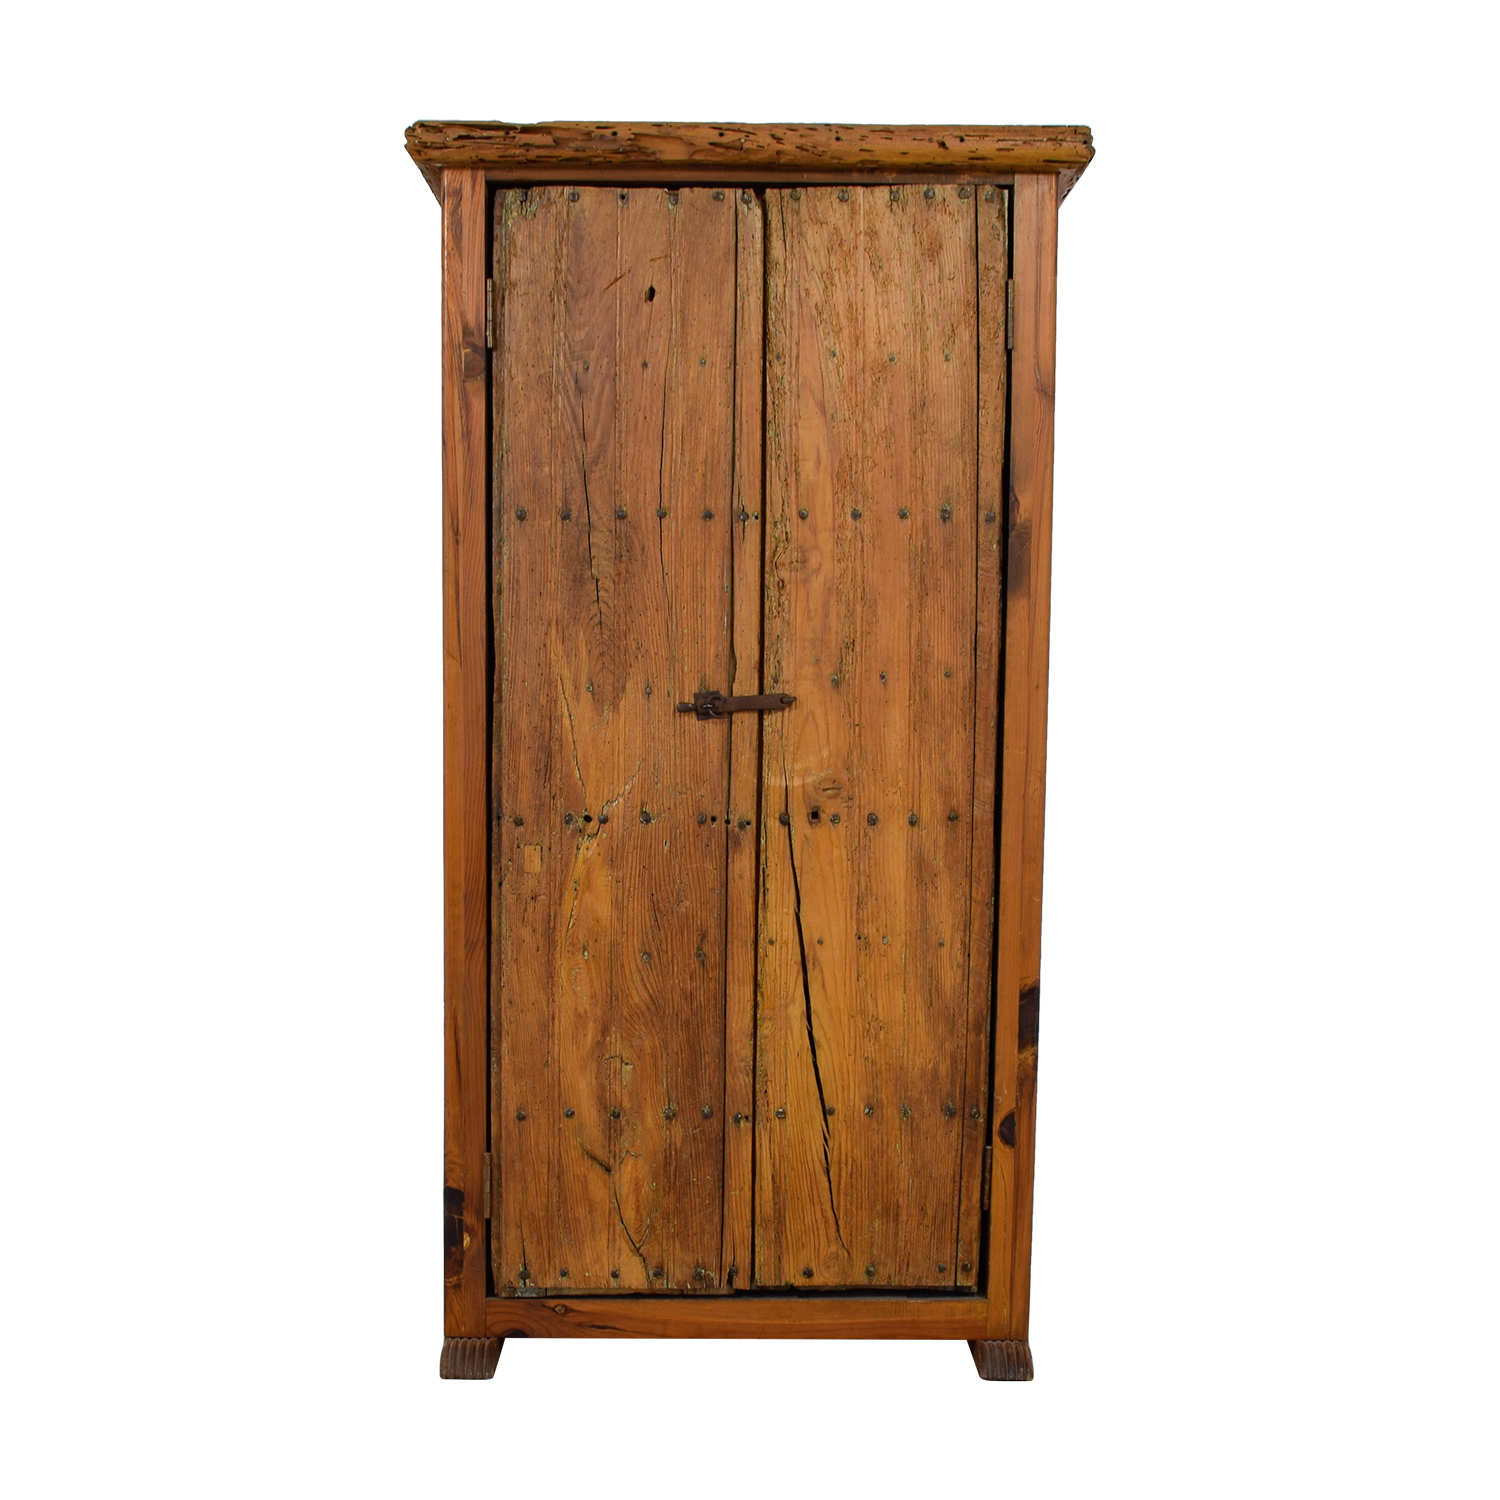 ABC Home & Carpet ABC Home & Carpet Authentic Mexican Rustic Barn Wood Armoire discount